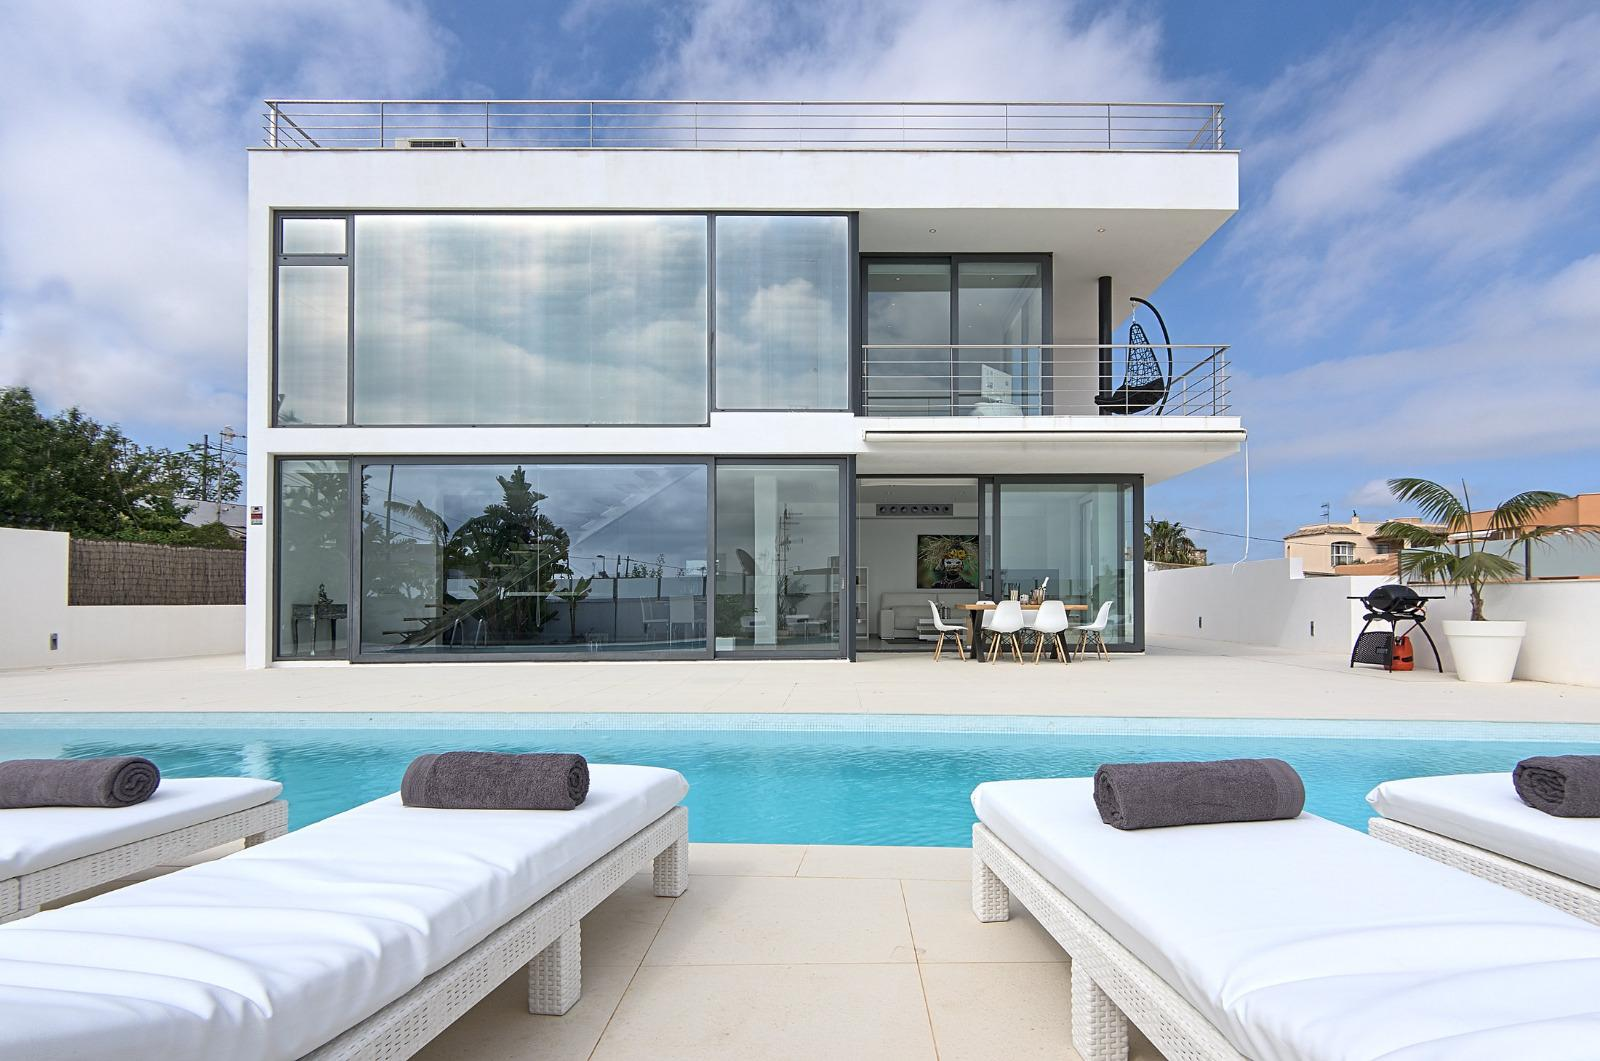 Villa is in minimalist style for sale near to Ibiza with rental license